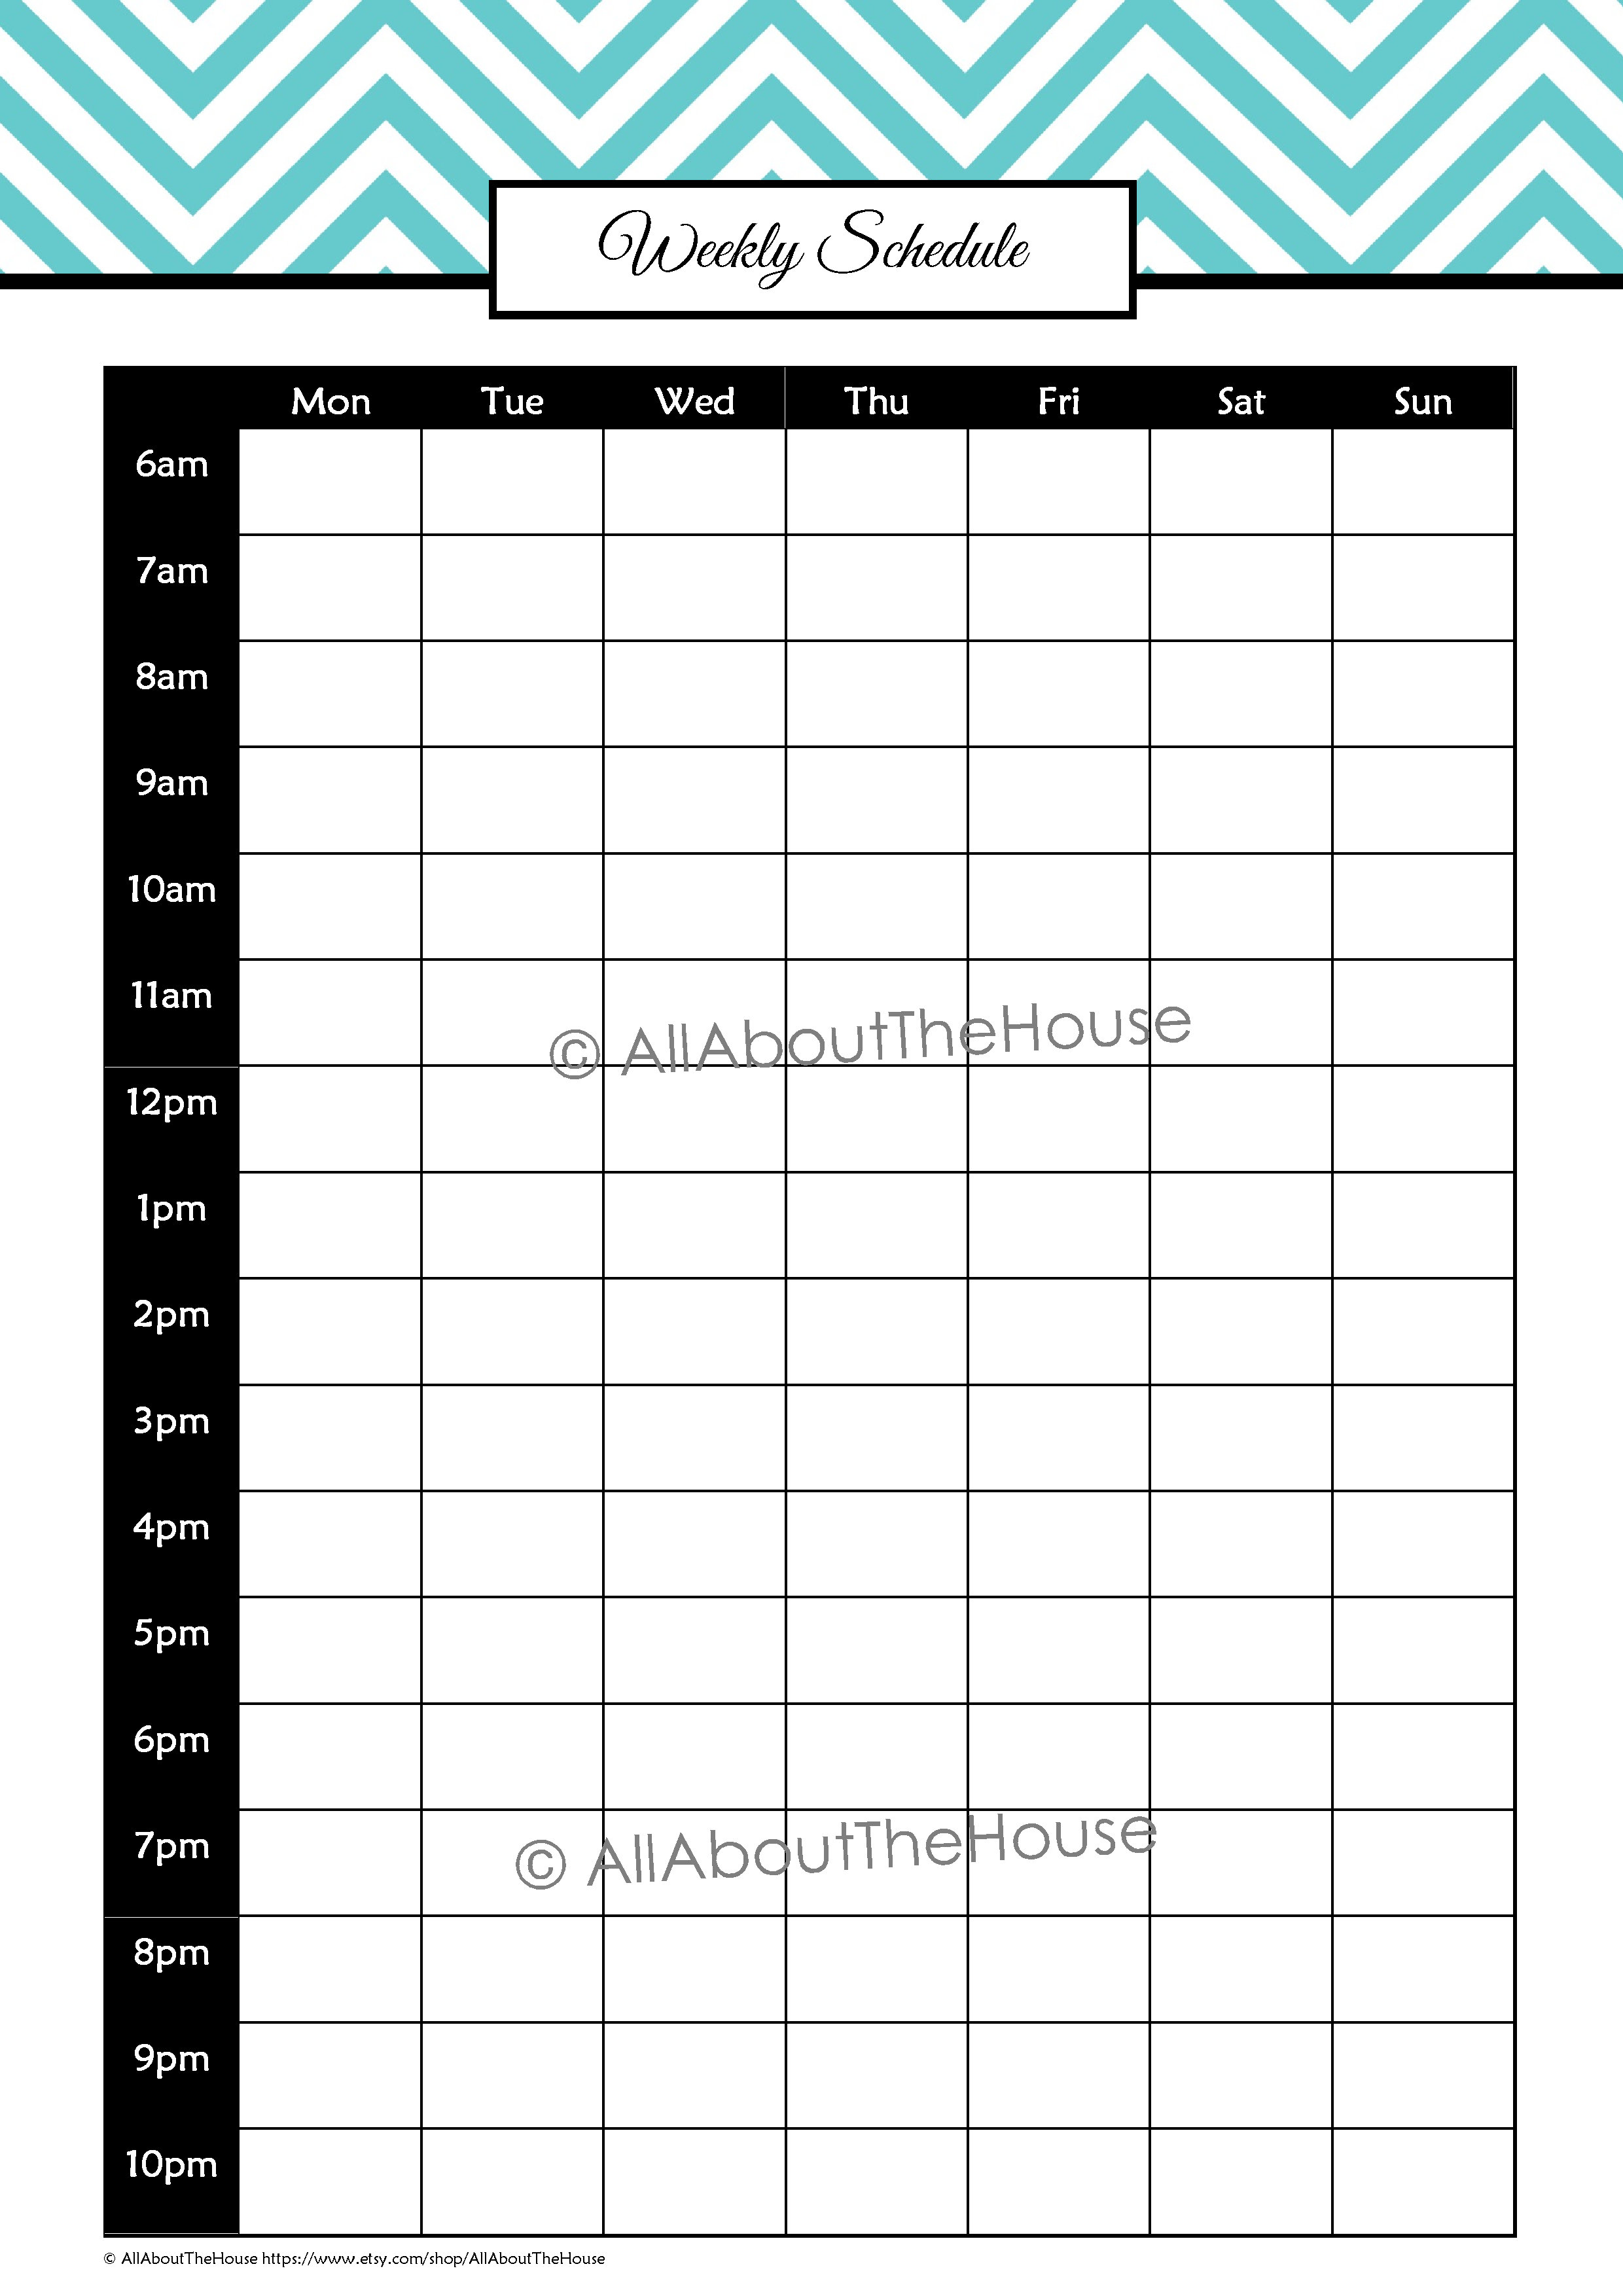 Comfortable 1 Week Calendar Template Tiny 100 Free Resume Templates Flat 1st Prize Certificate Template 2 Page Resumes Formats Youthful 2.25 Button Template Fresh2014 Monthly Calendar Templates Student Weekly Planner Template   Vosvete